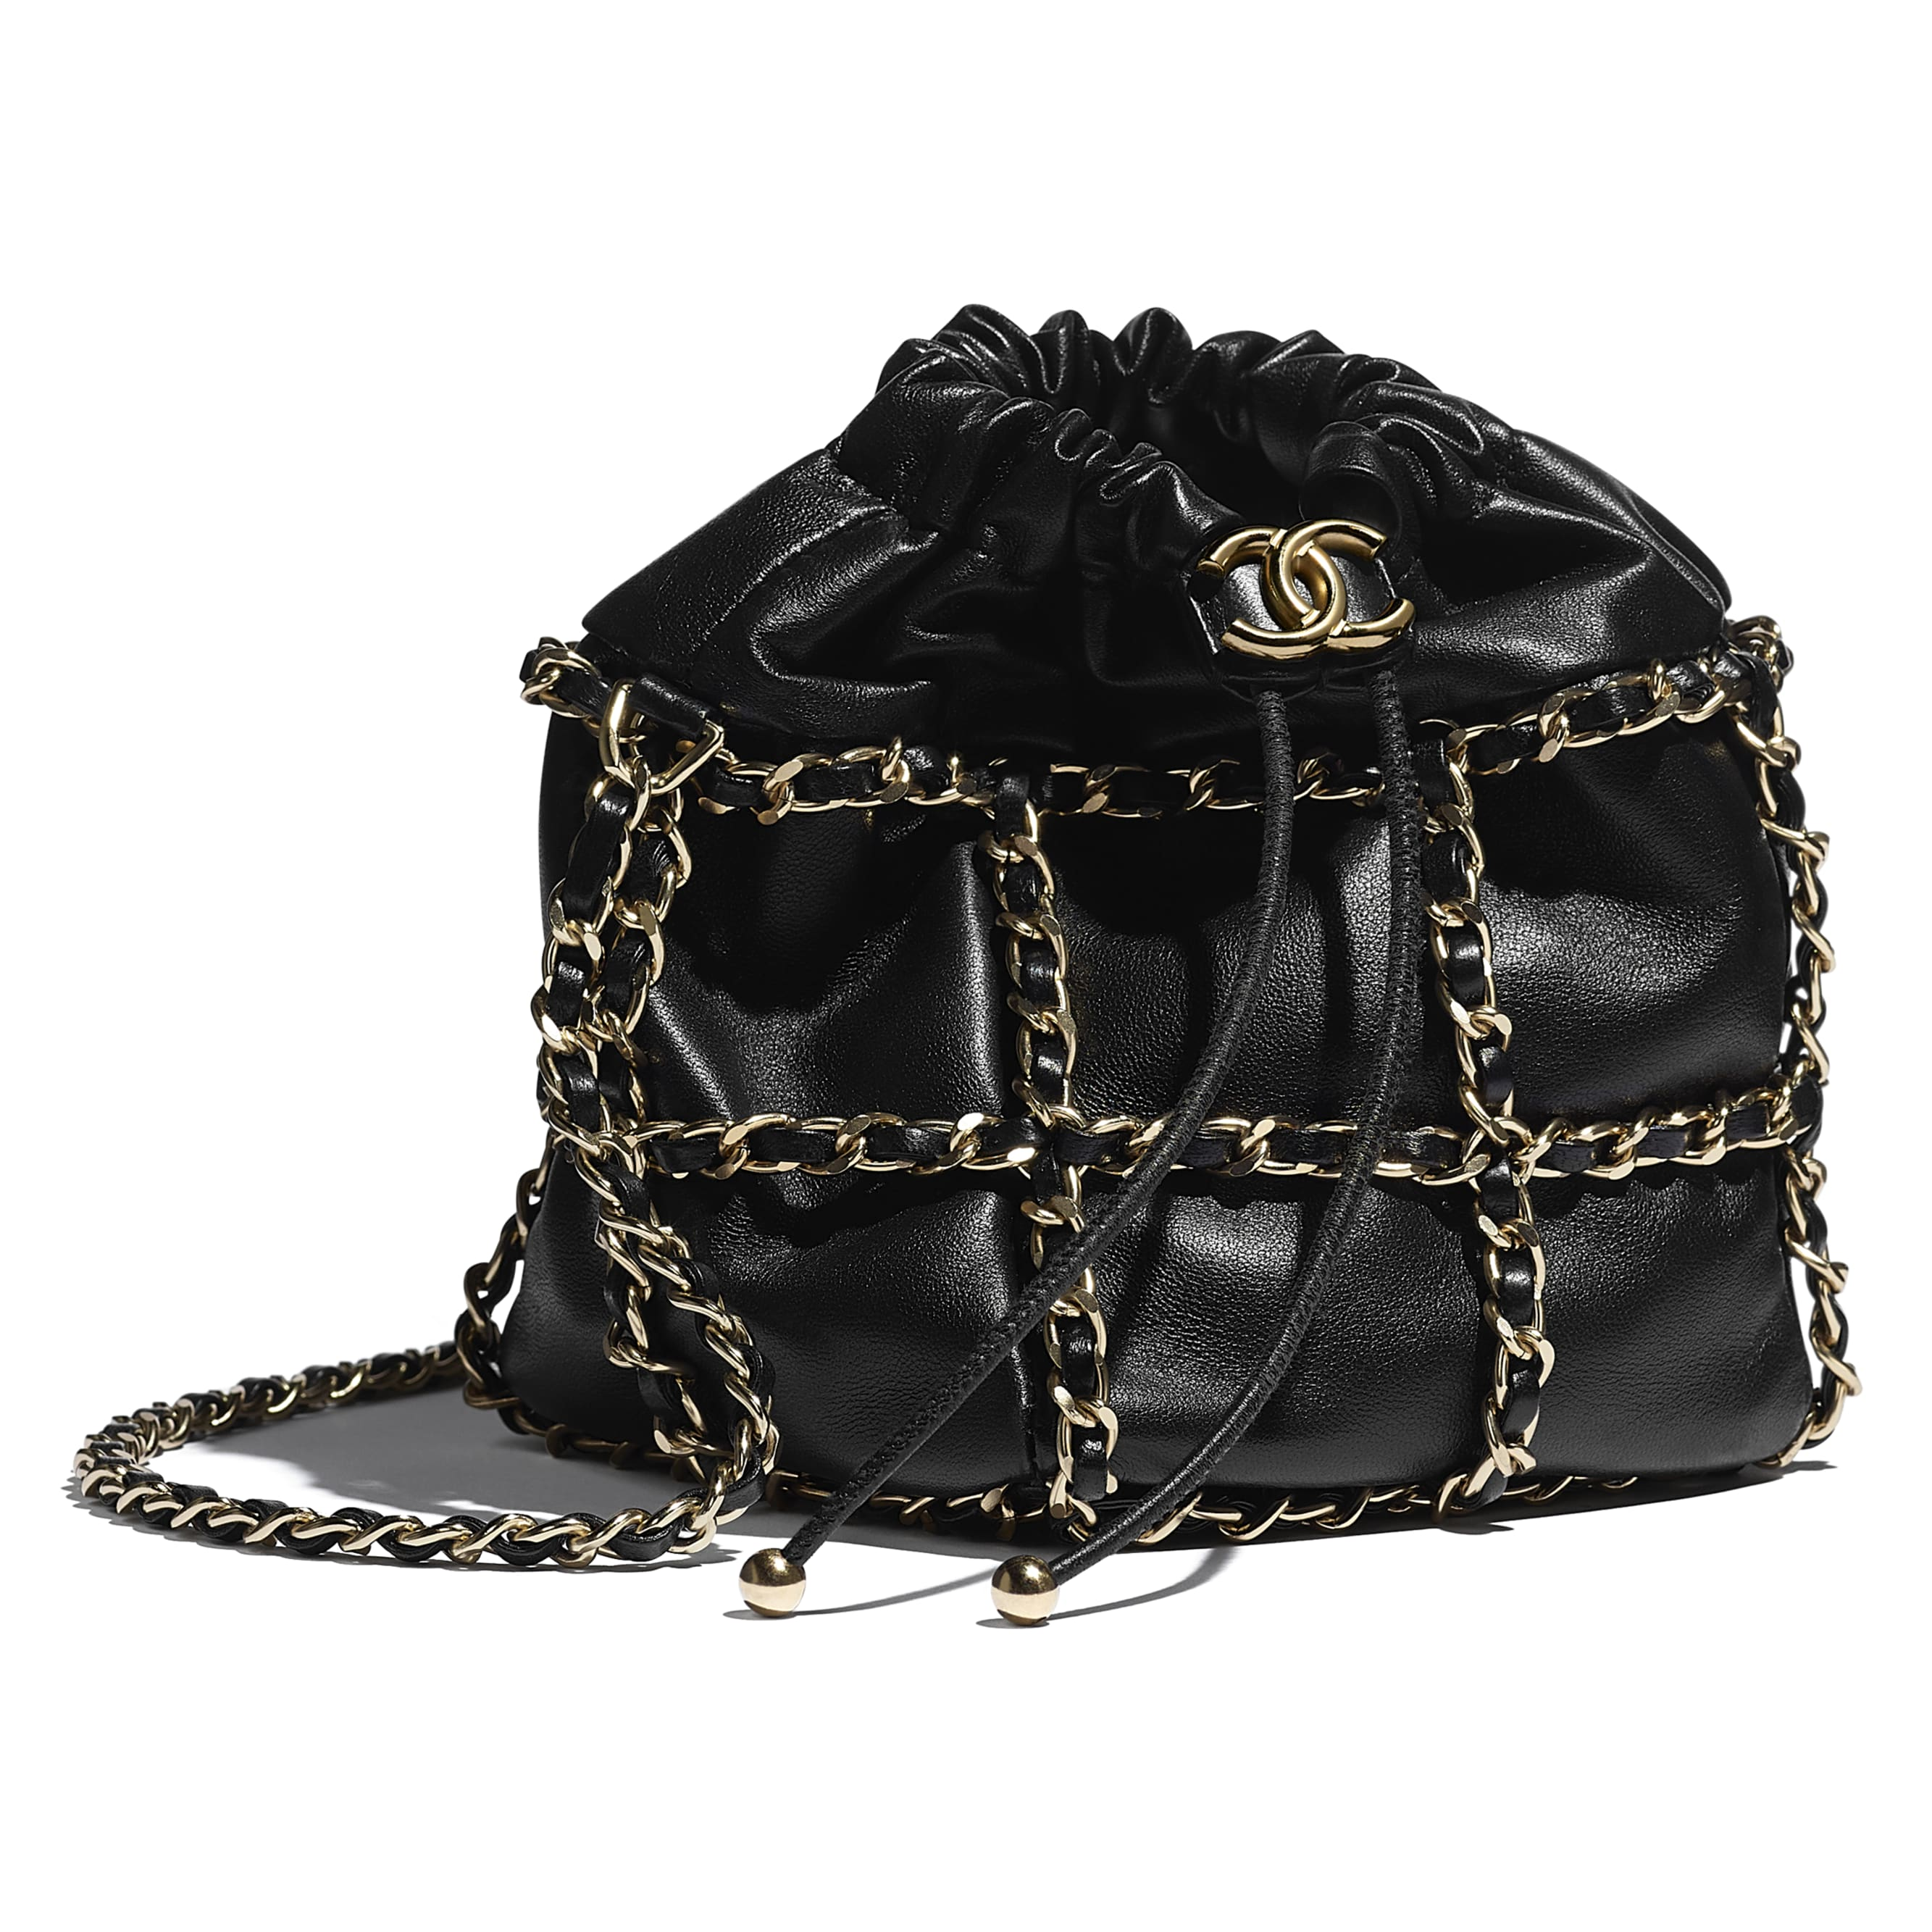 Small Drawstring Bag - Black - Lambskin & Gold Metal  - CHANEL - Extra view - see standard sized version